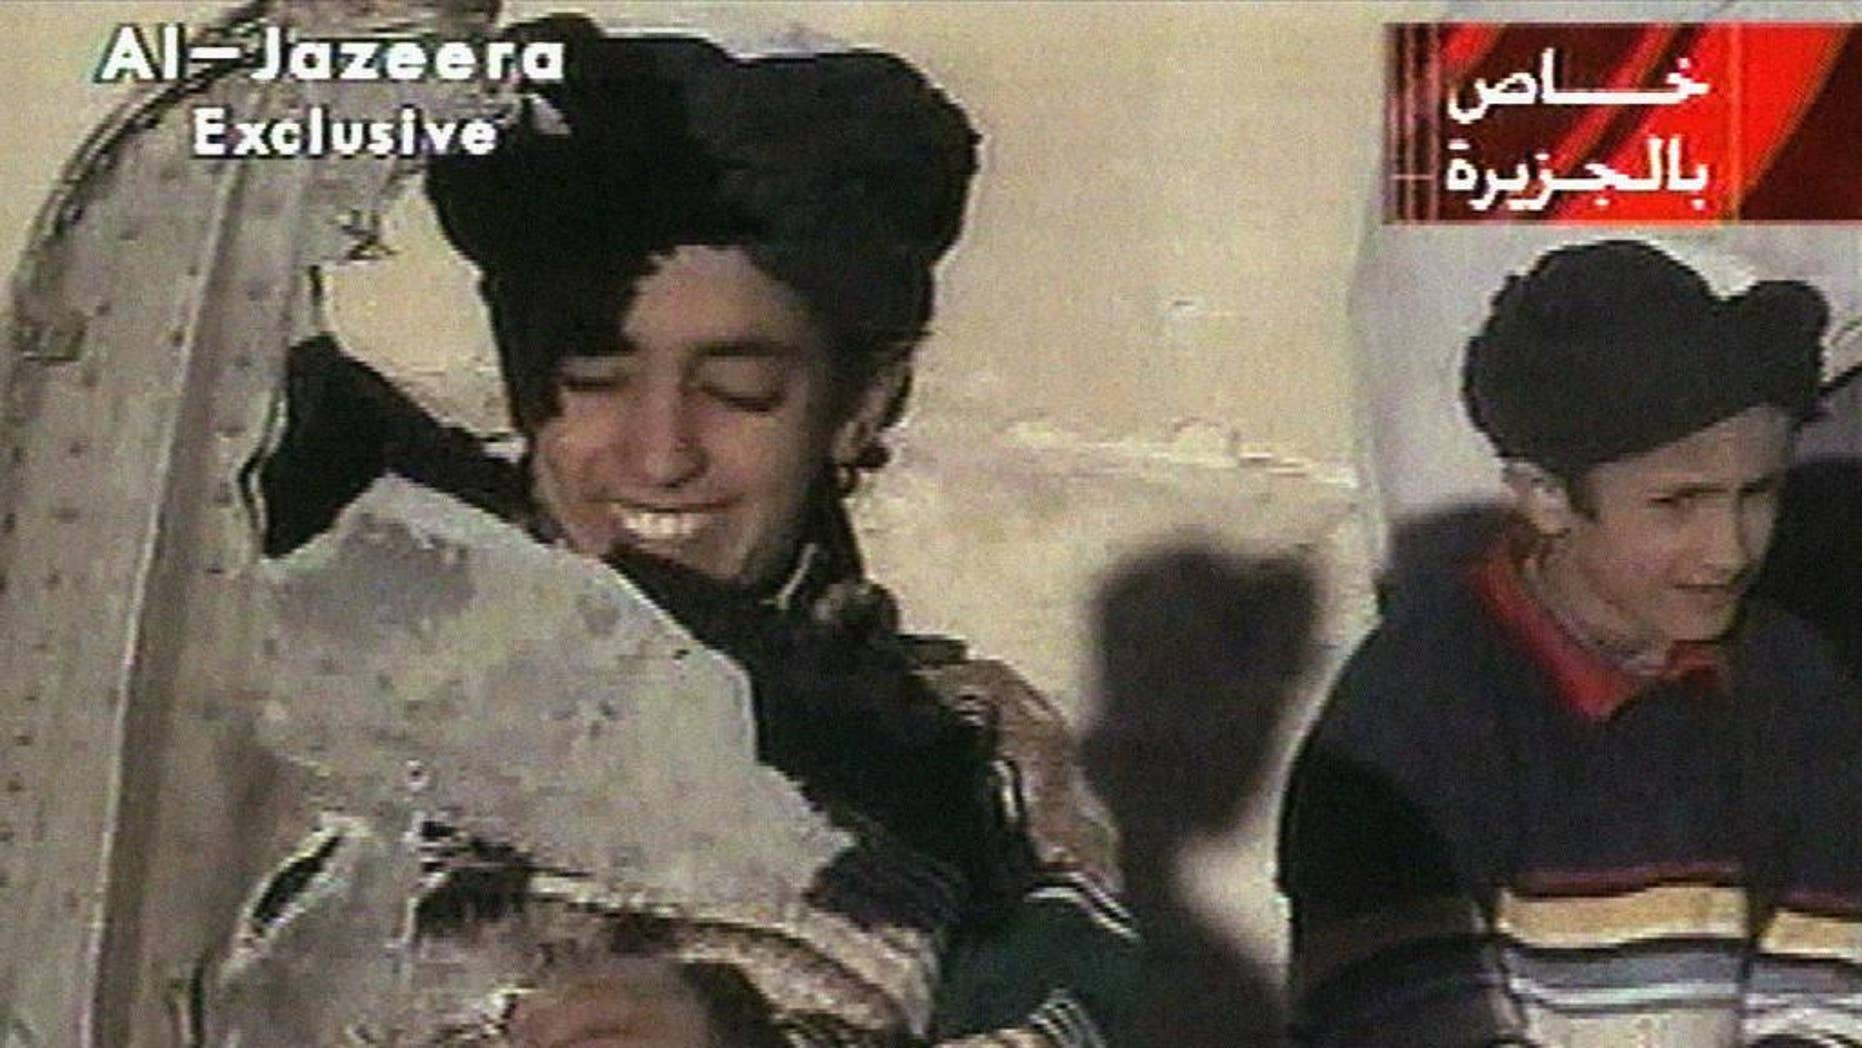 "In this image made from video broadcast by the Qatari-based satellite television station Al-Jazeera Wednesday, Nov. 7, 2001, a young boy, left, identified as Hamza bin Laden holds what the Taliban says is a piece of U.S. helicopter wreckage in Ghazni, Afghanistan on Monday, Nov. 5, 2001. The Obama administration has announced terrorism-related sanctions against a son of Sept. 11 mastermind Osama bin Laden. The State Department says Hamza bin Laden has been ""determined to have committed, or pose a serious risk of committing, acts of terrorism that threaten the security of U.S. nationals or the national security.""  (AP Photo/Al-Jazeera via APTN) ** TV OUT **"